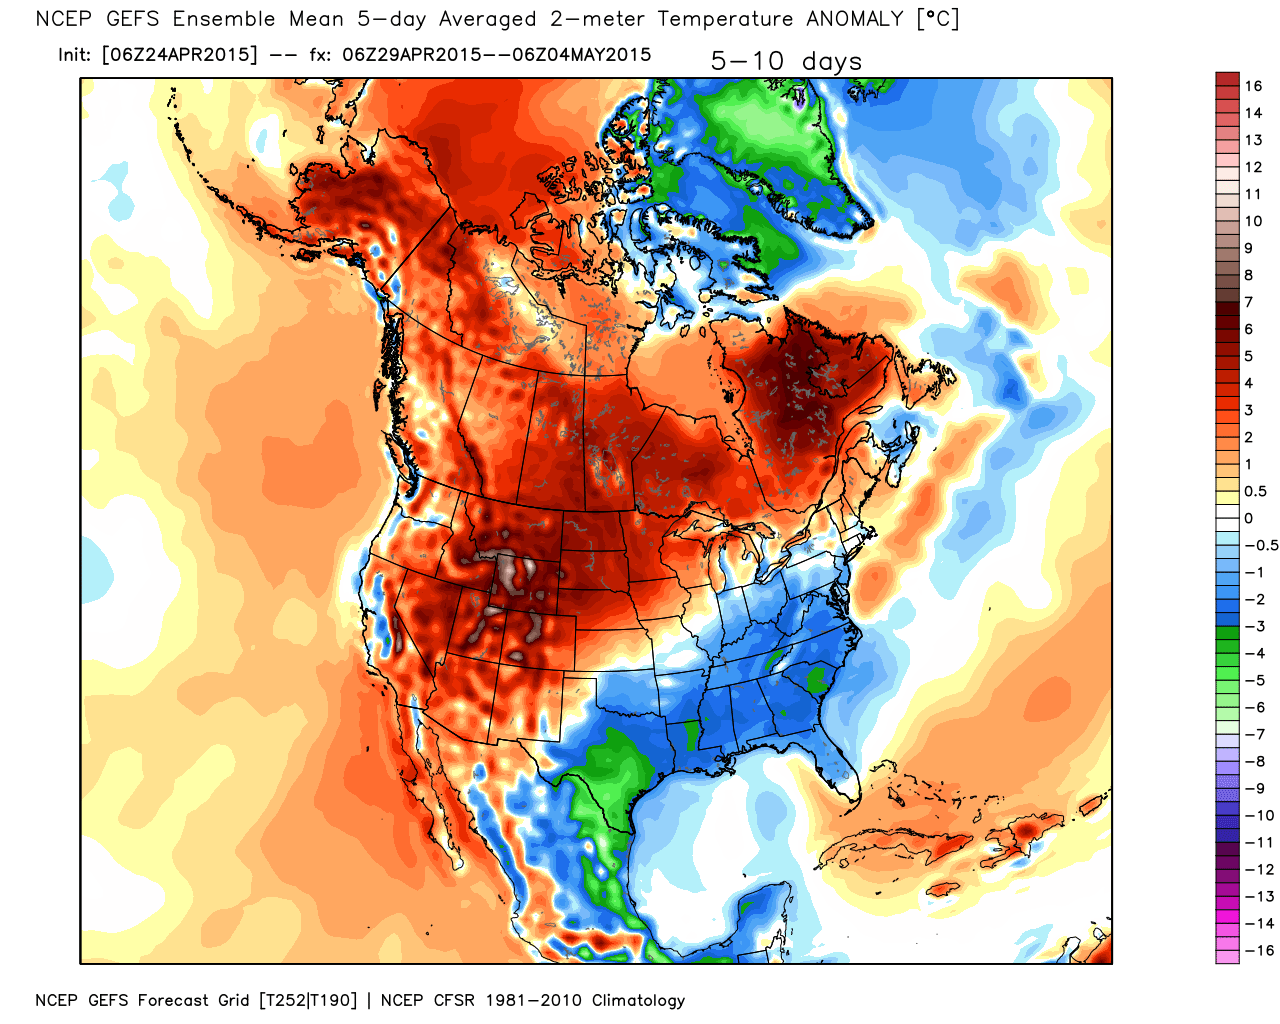 Temperature Anomalies from Average for the period of April 29 through May 4